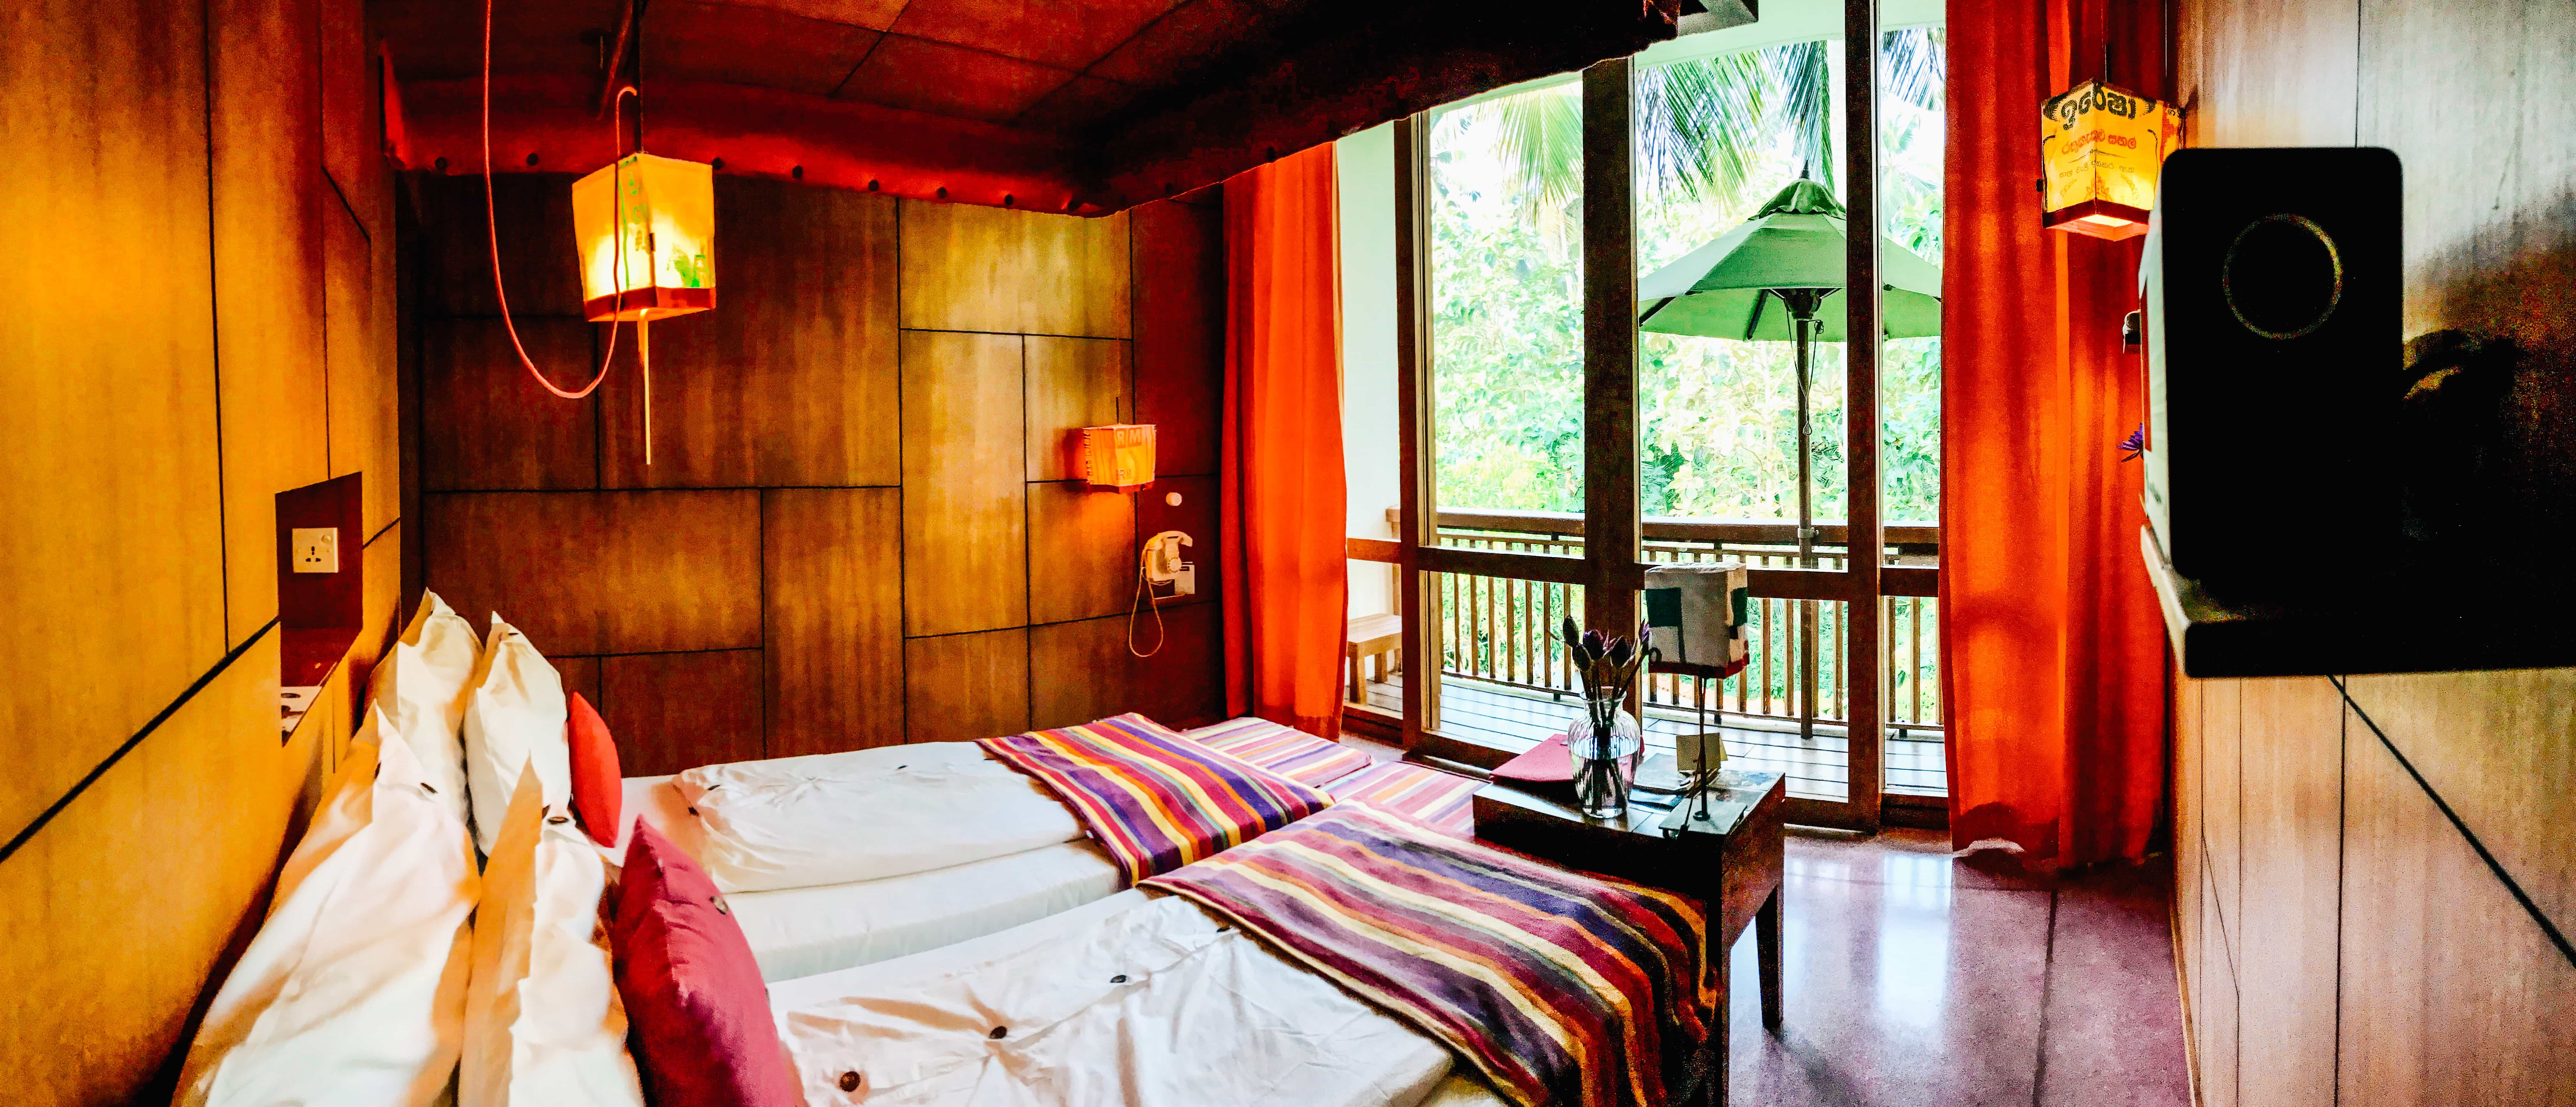 Underneath the Mango Tree radiates warmth, relaxation, and good vibes. With colorful decor, UTMT will light up your vacation - both physically and mentally! A few days relaxing at UTMT is an absolute must for anyone visiting Sri Lanka. Read more at www.thefivefoottraveler.com